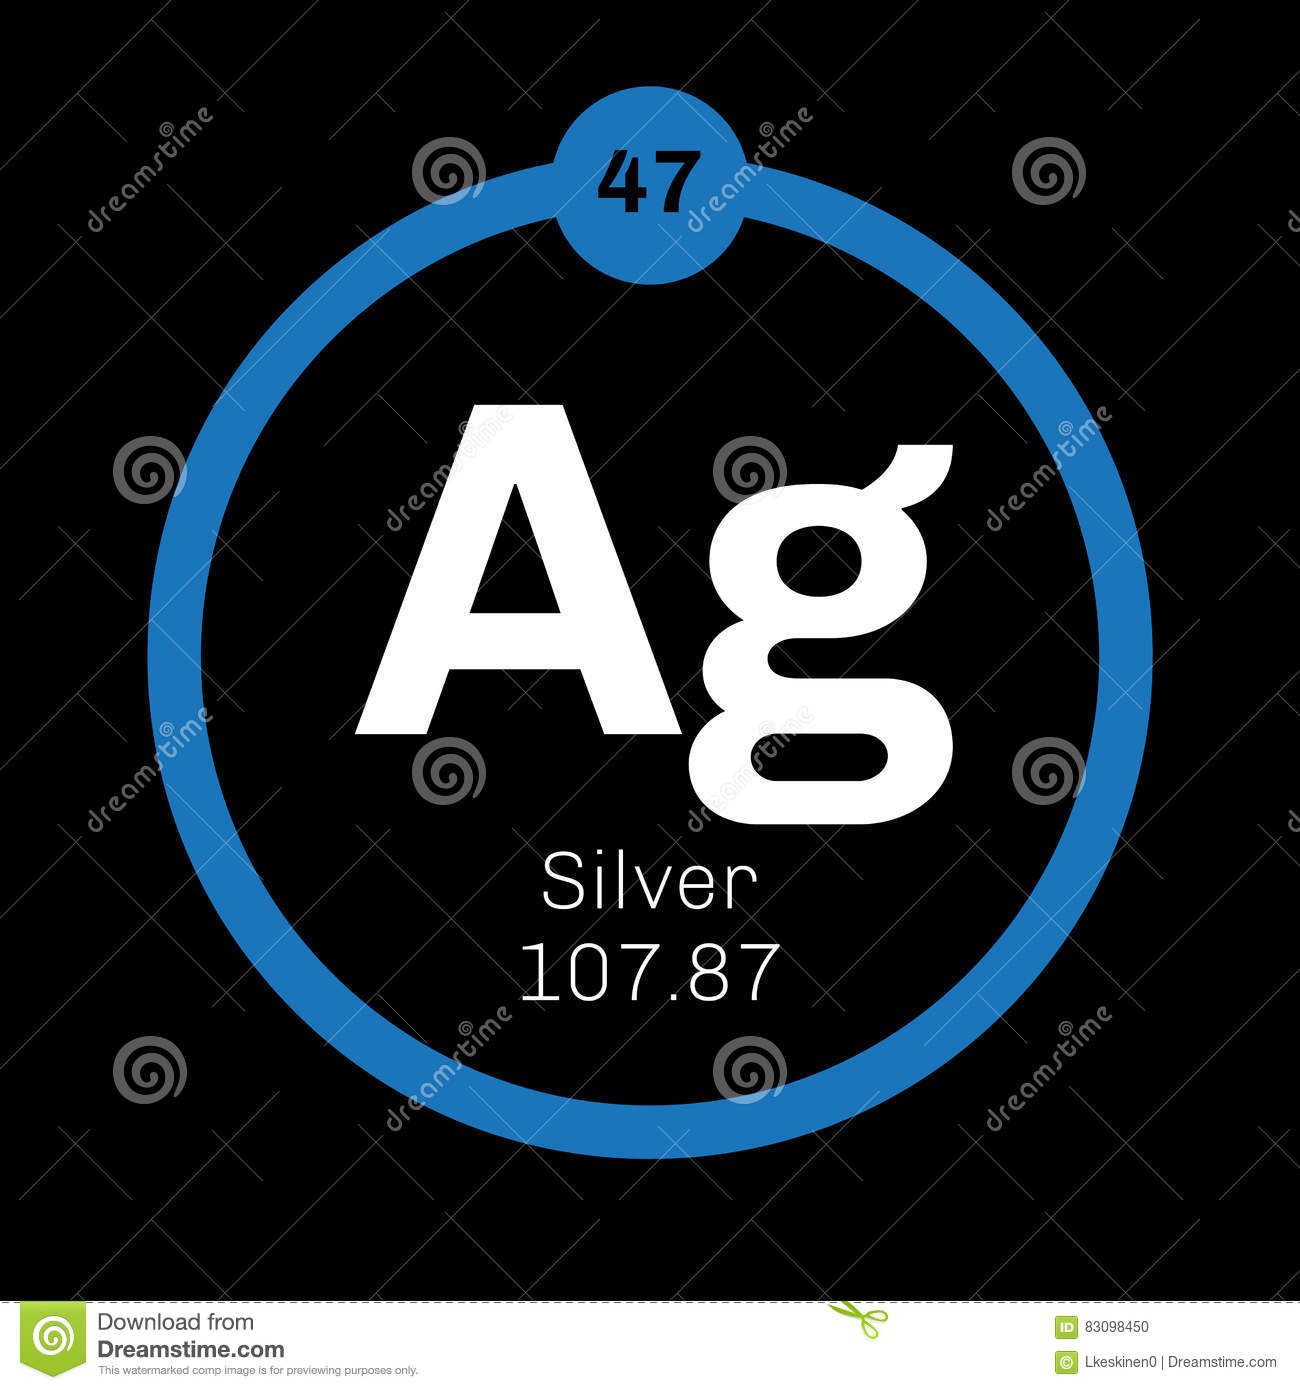 Element Silvers: Silver Chemical Element Stock Vector. Illustration Of